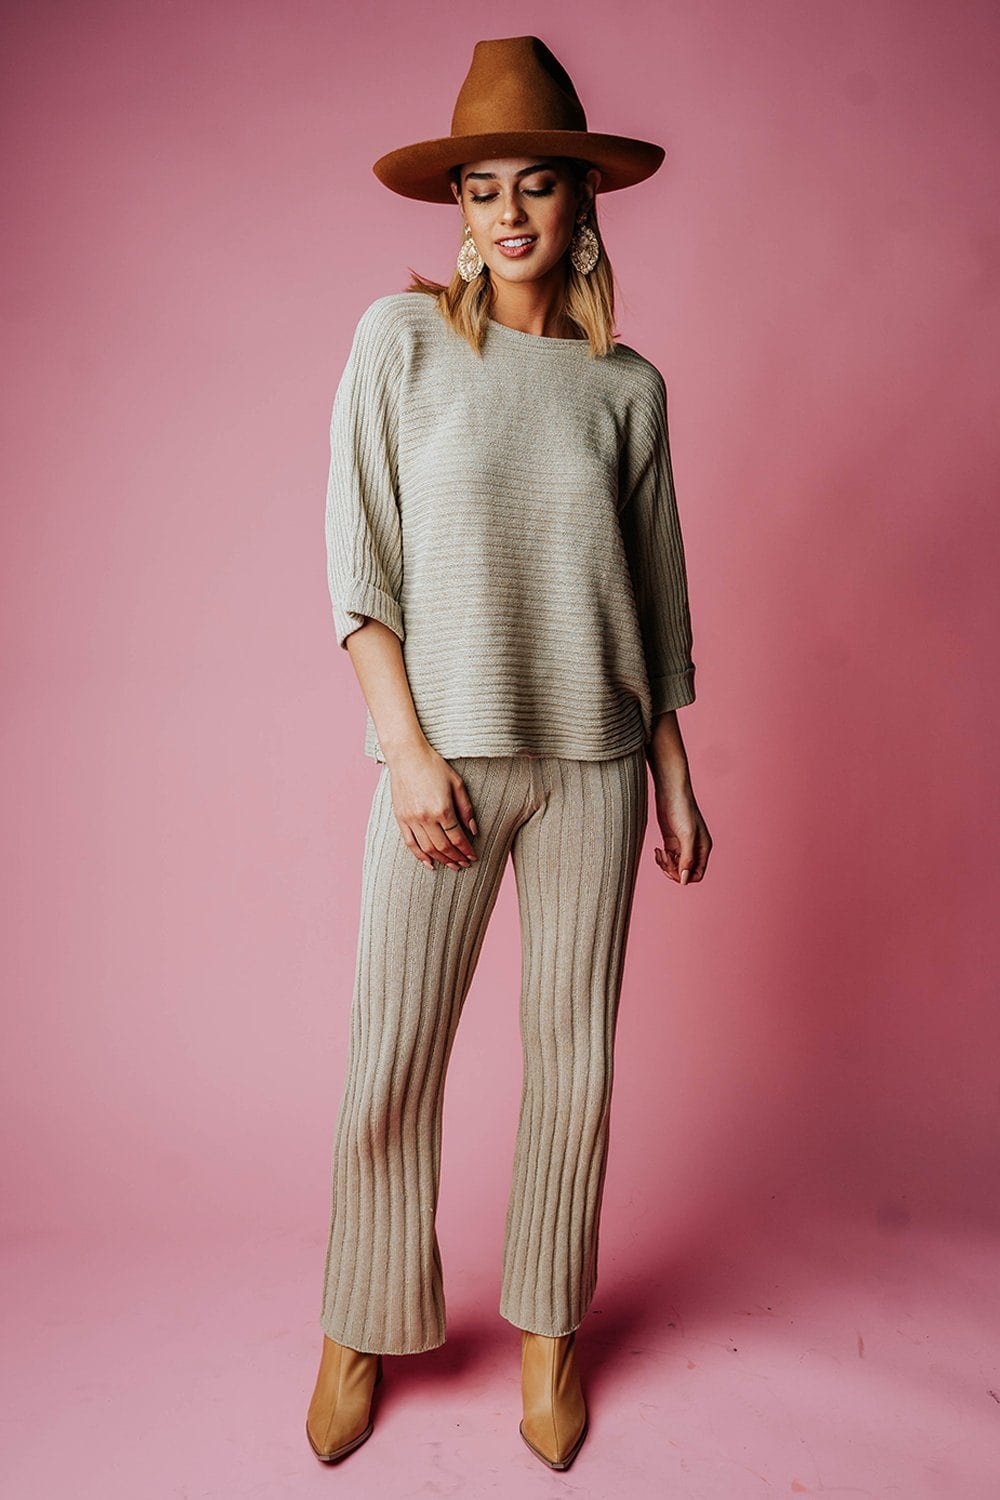 The Brooke Pant in Pistachio Bottom By Together Clad and Cloth